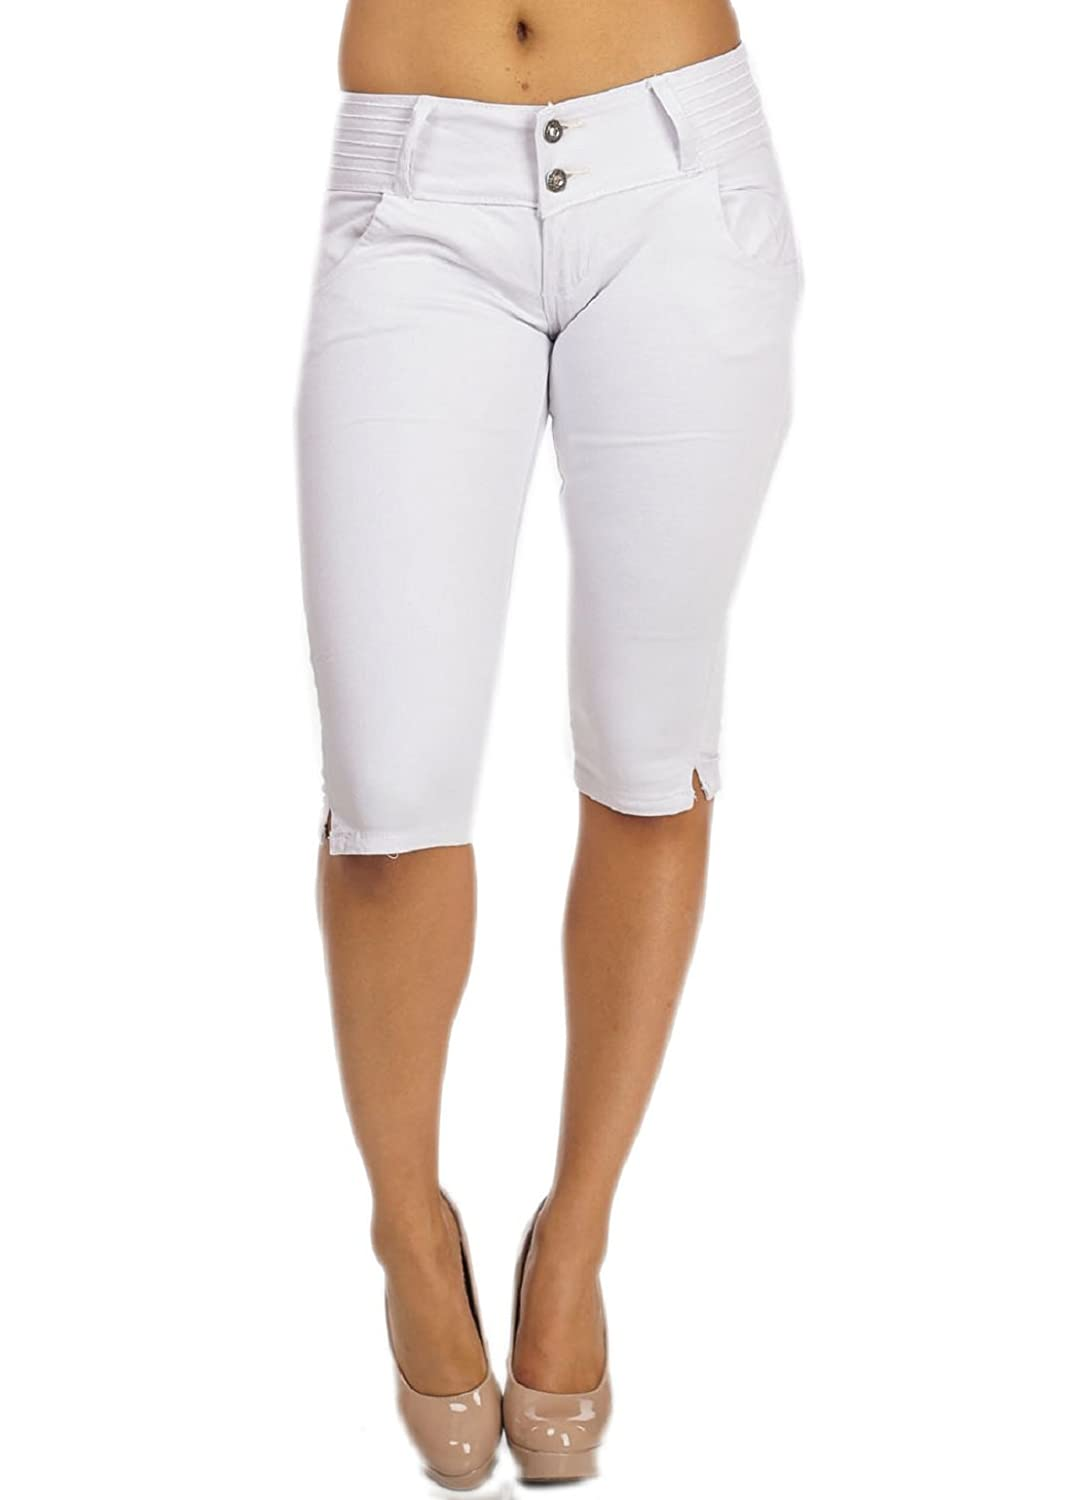 outlet Women's White Capris Shorts - hammerheadprotection.com